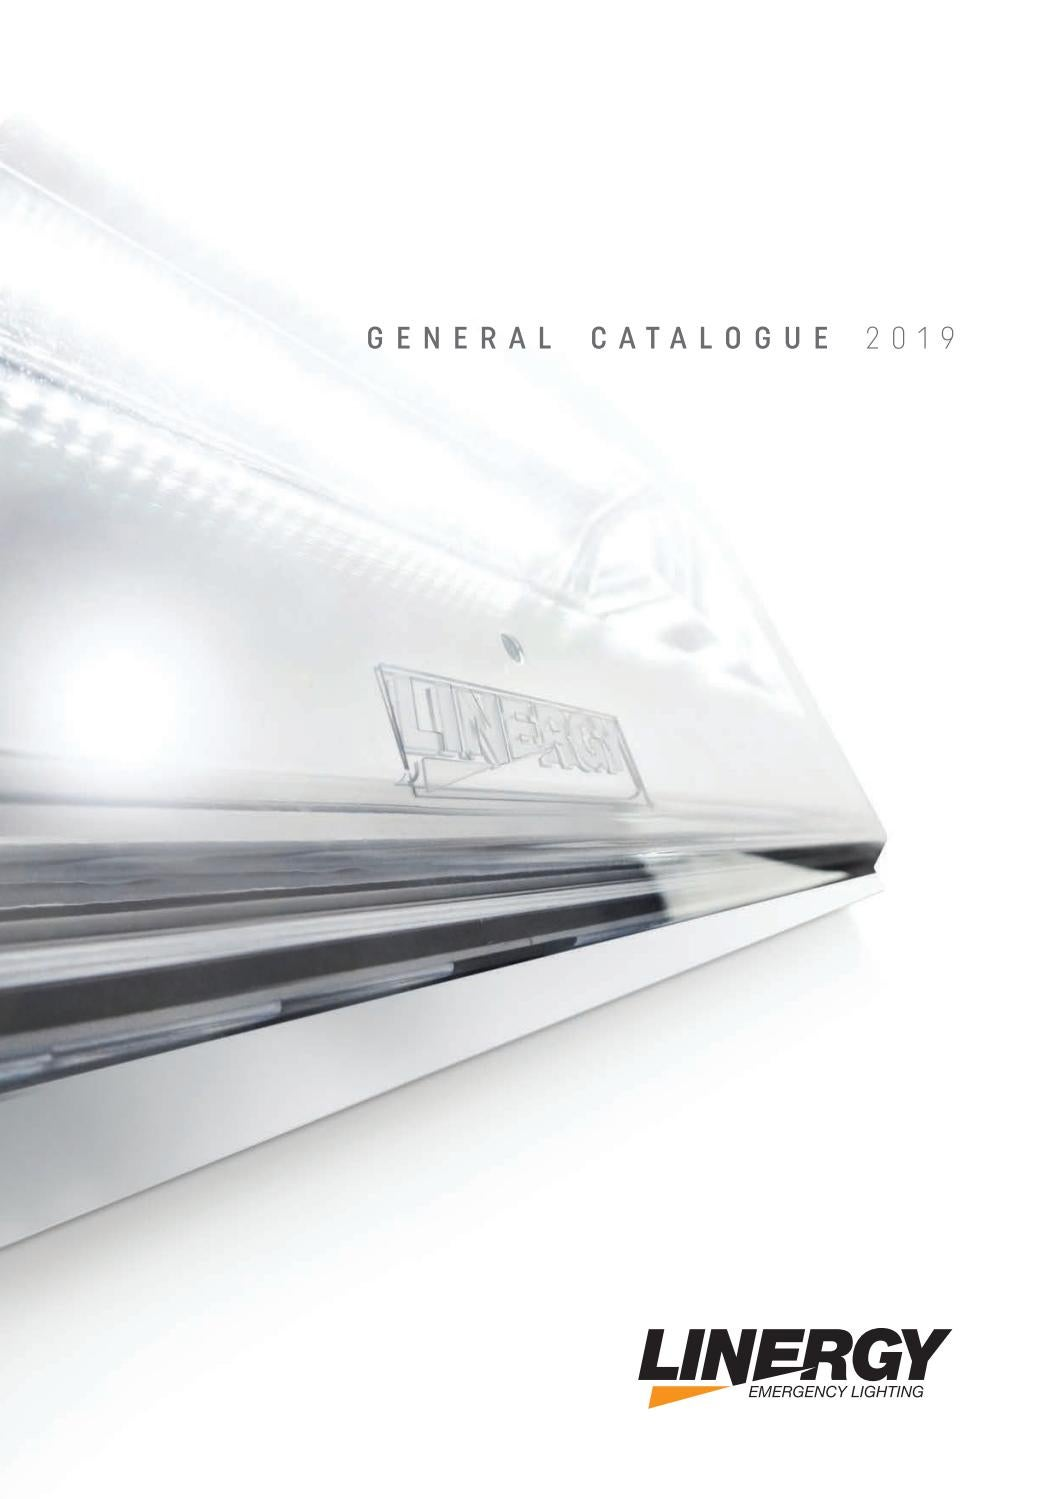 Linergy - General Catalogue 2019 by Linergy - issuu